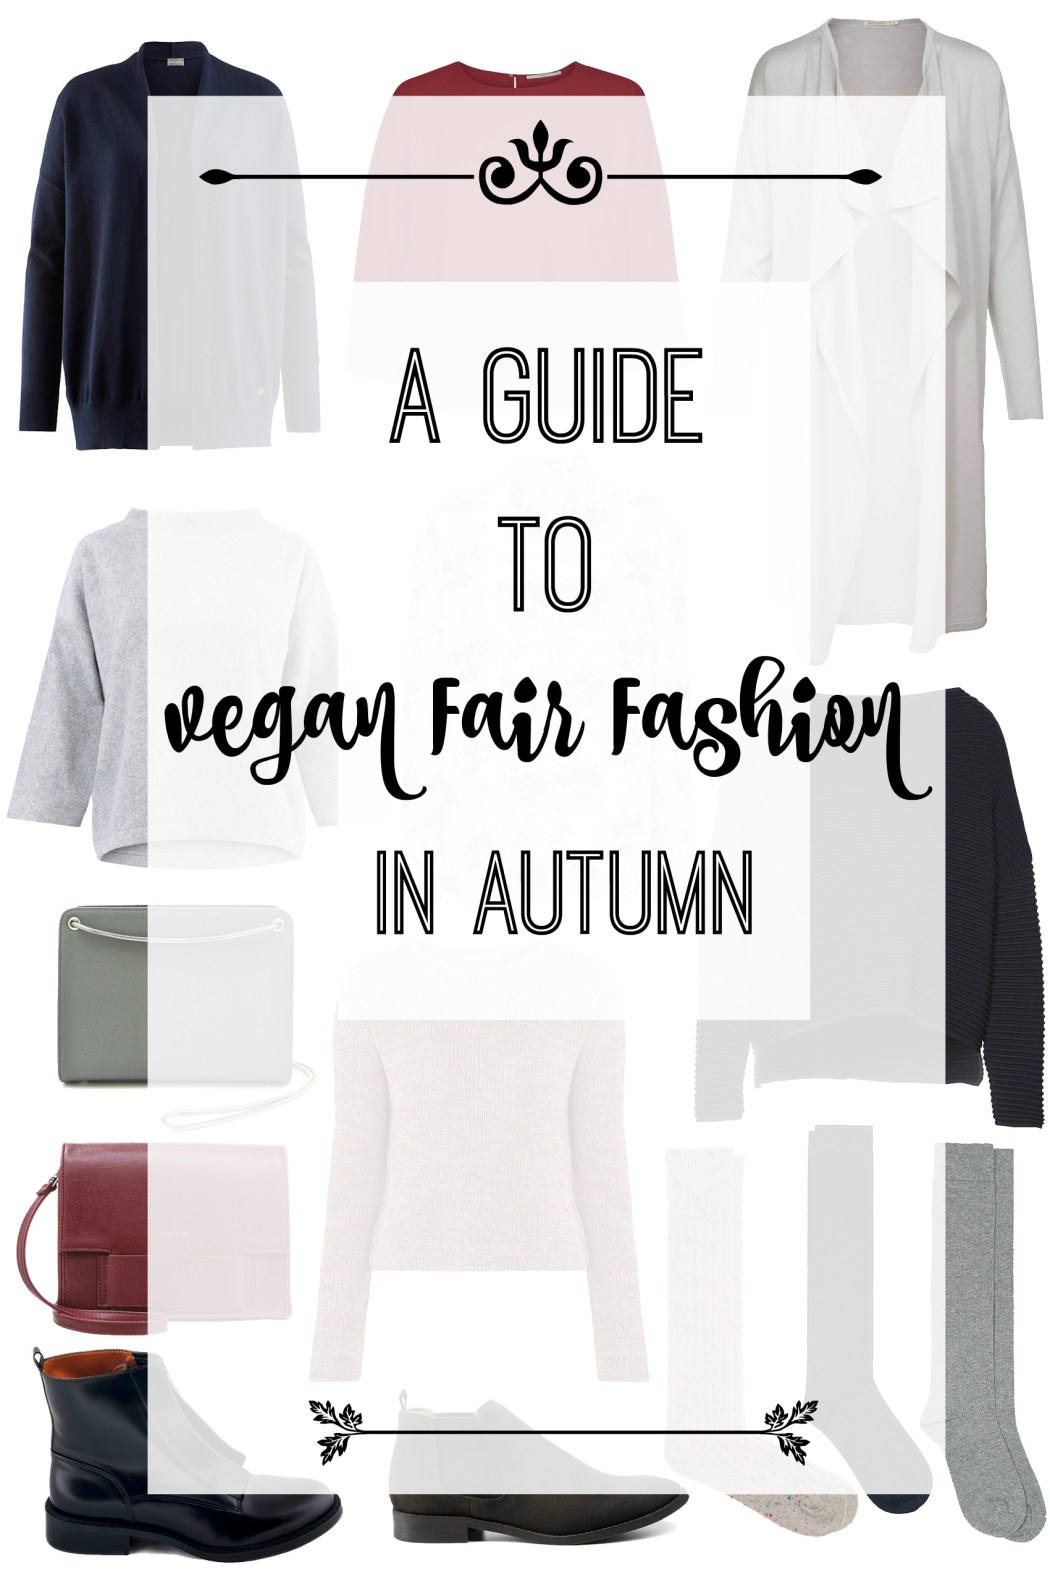 a vegan fair fashion guide for autumn